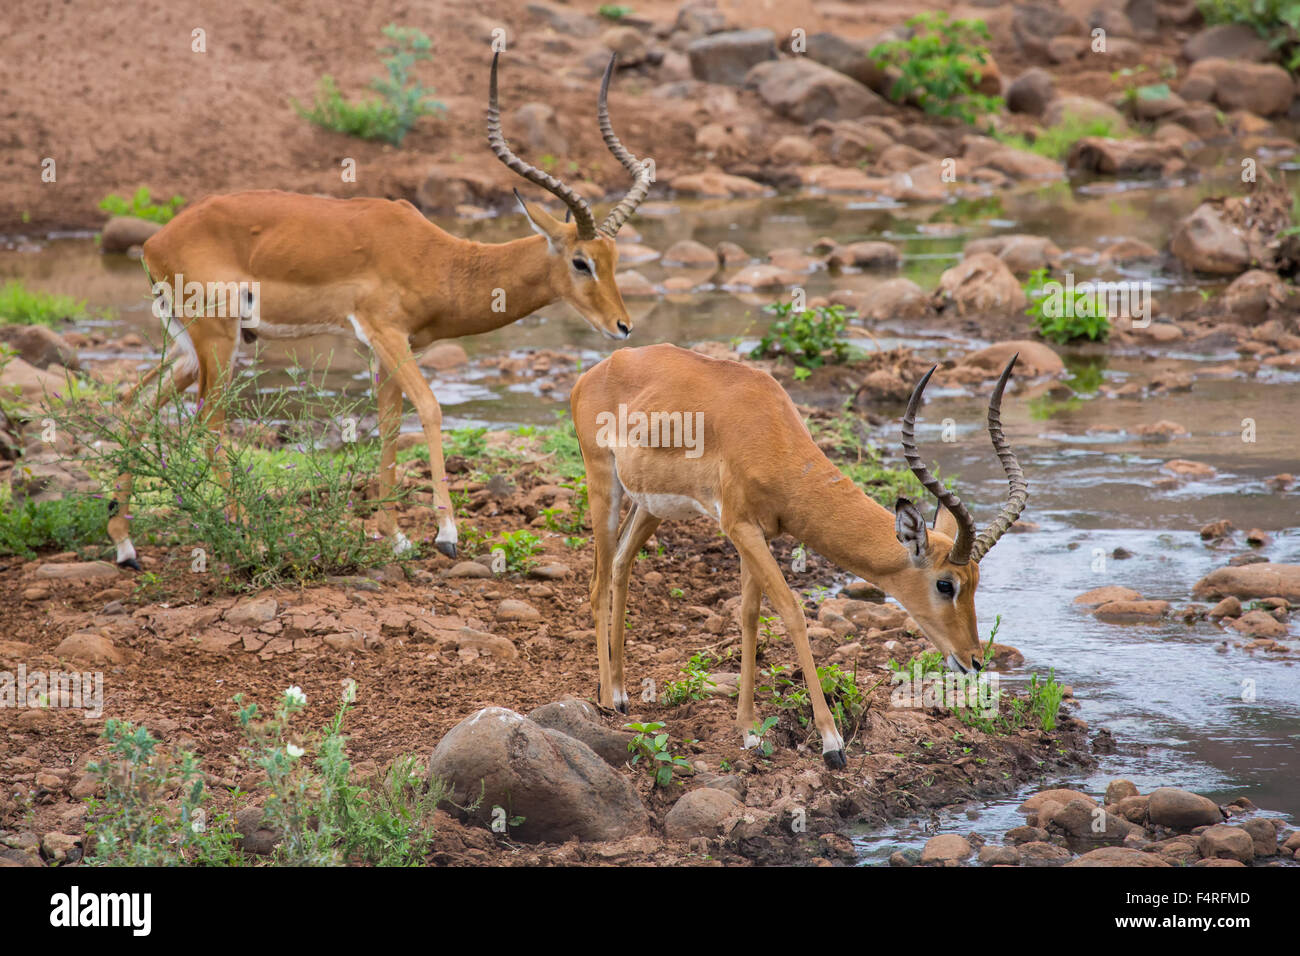 Africa, antelopes, impala, Lake Manyara, national park, safari, travel, mammals, Tanzania, animals, wilderness, - Stock Image